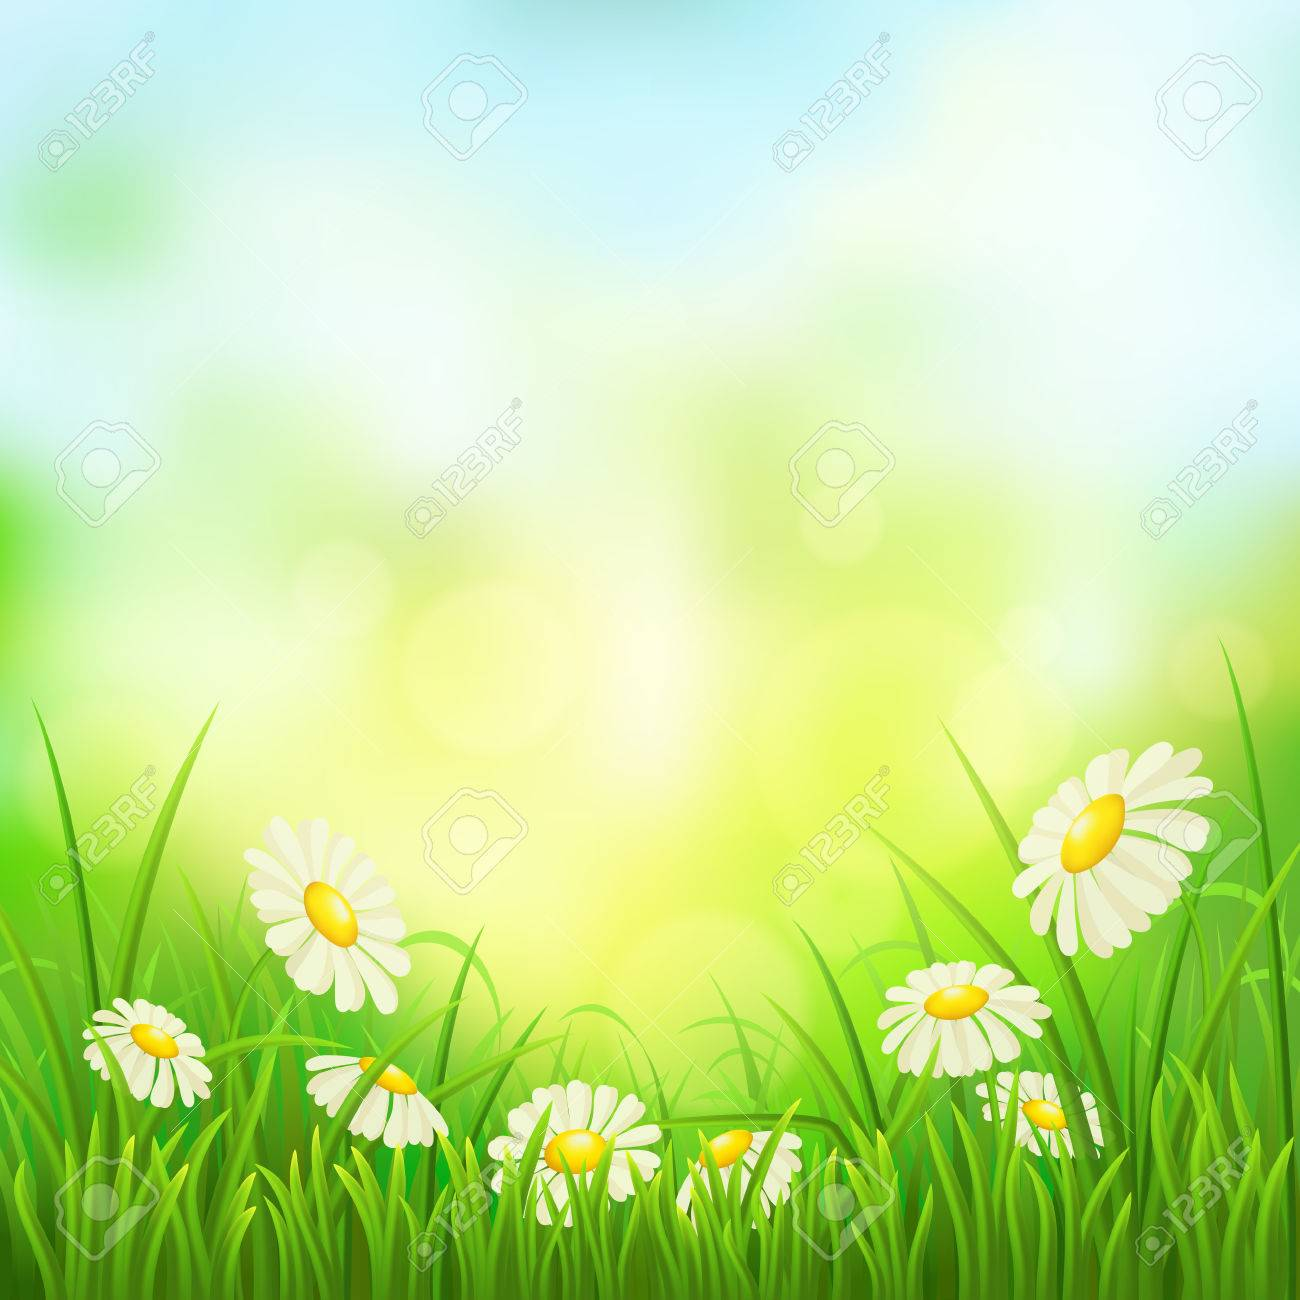 Spring meadow with green grass and daisies, vector illustration - 38610324